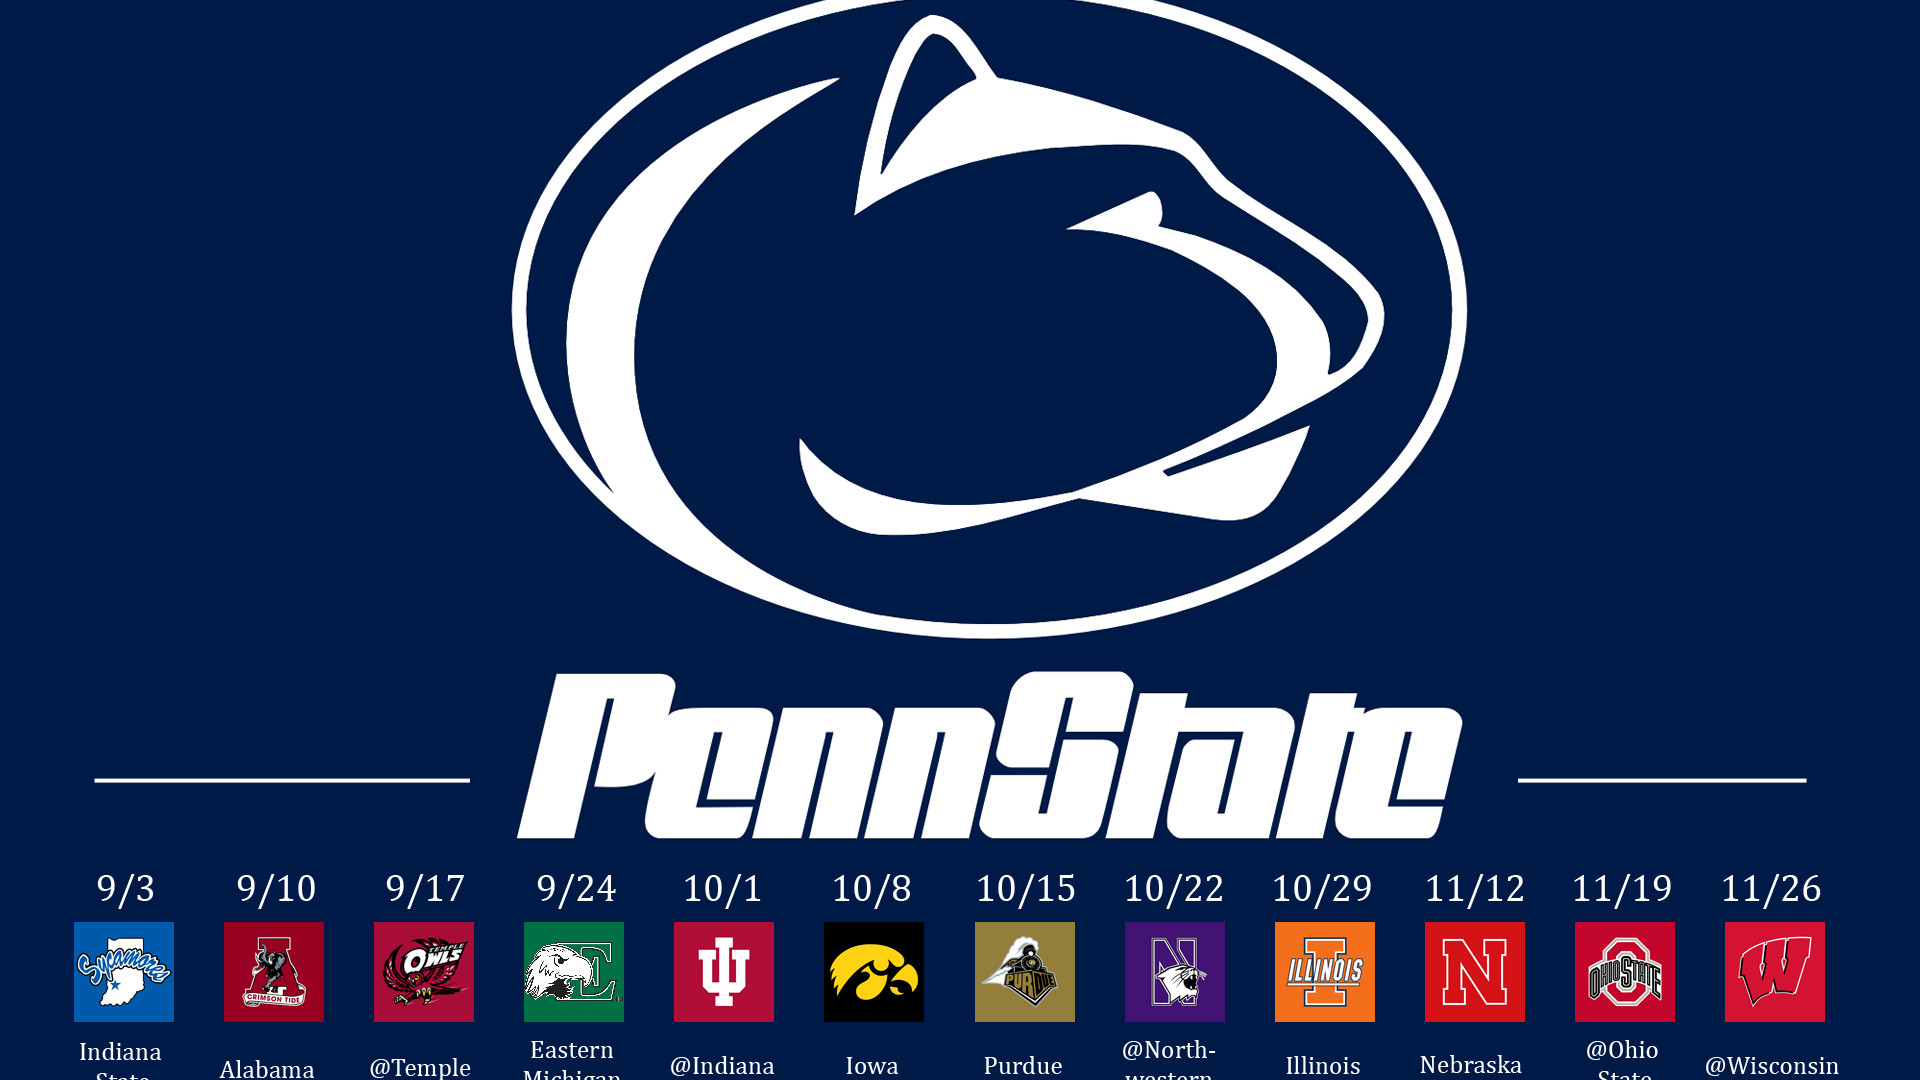 Iphone X Wallpaper Official Penn State Iphone Wallpaper 49 Images